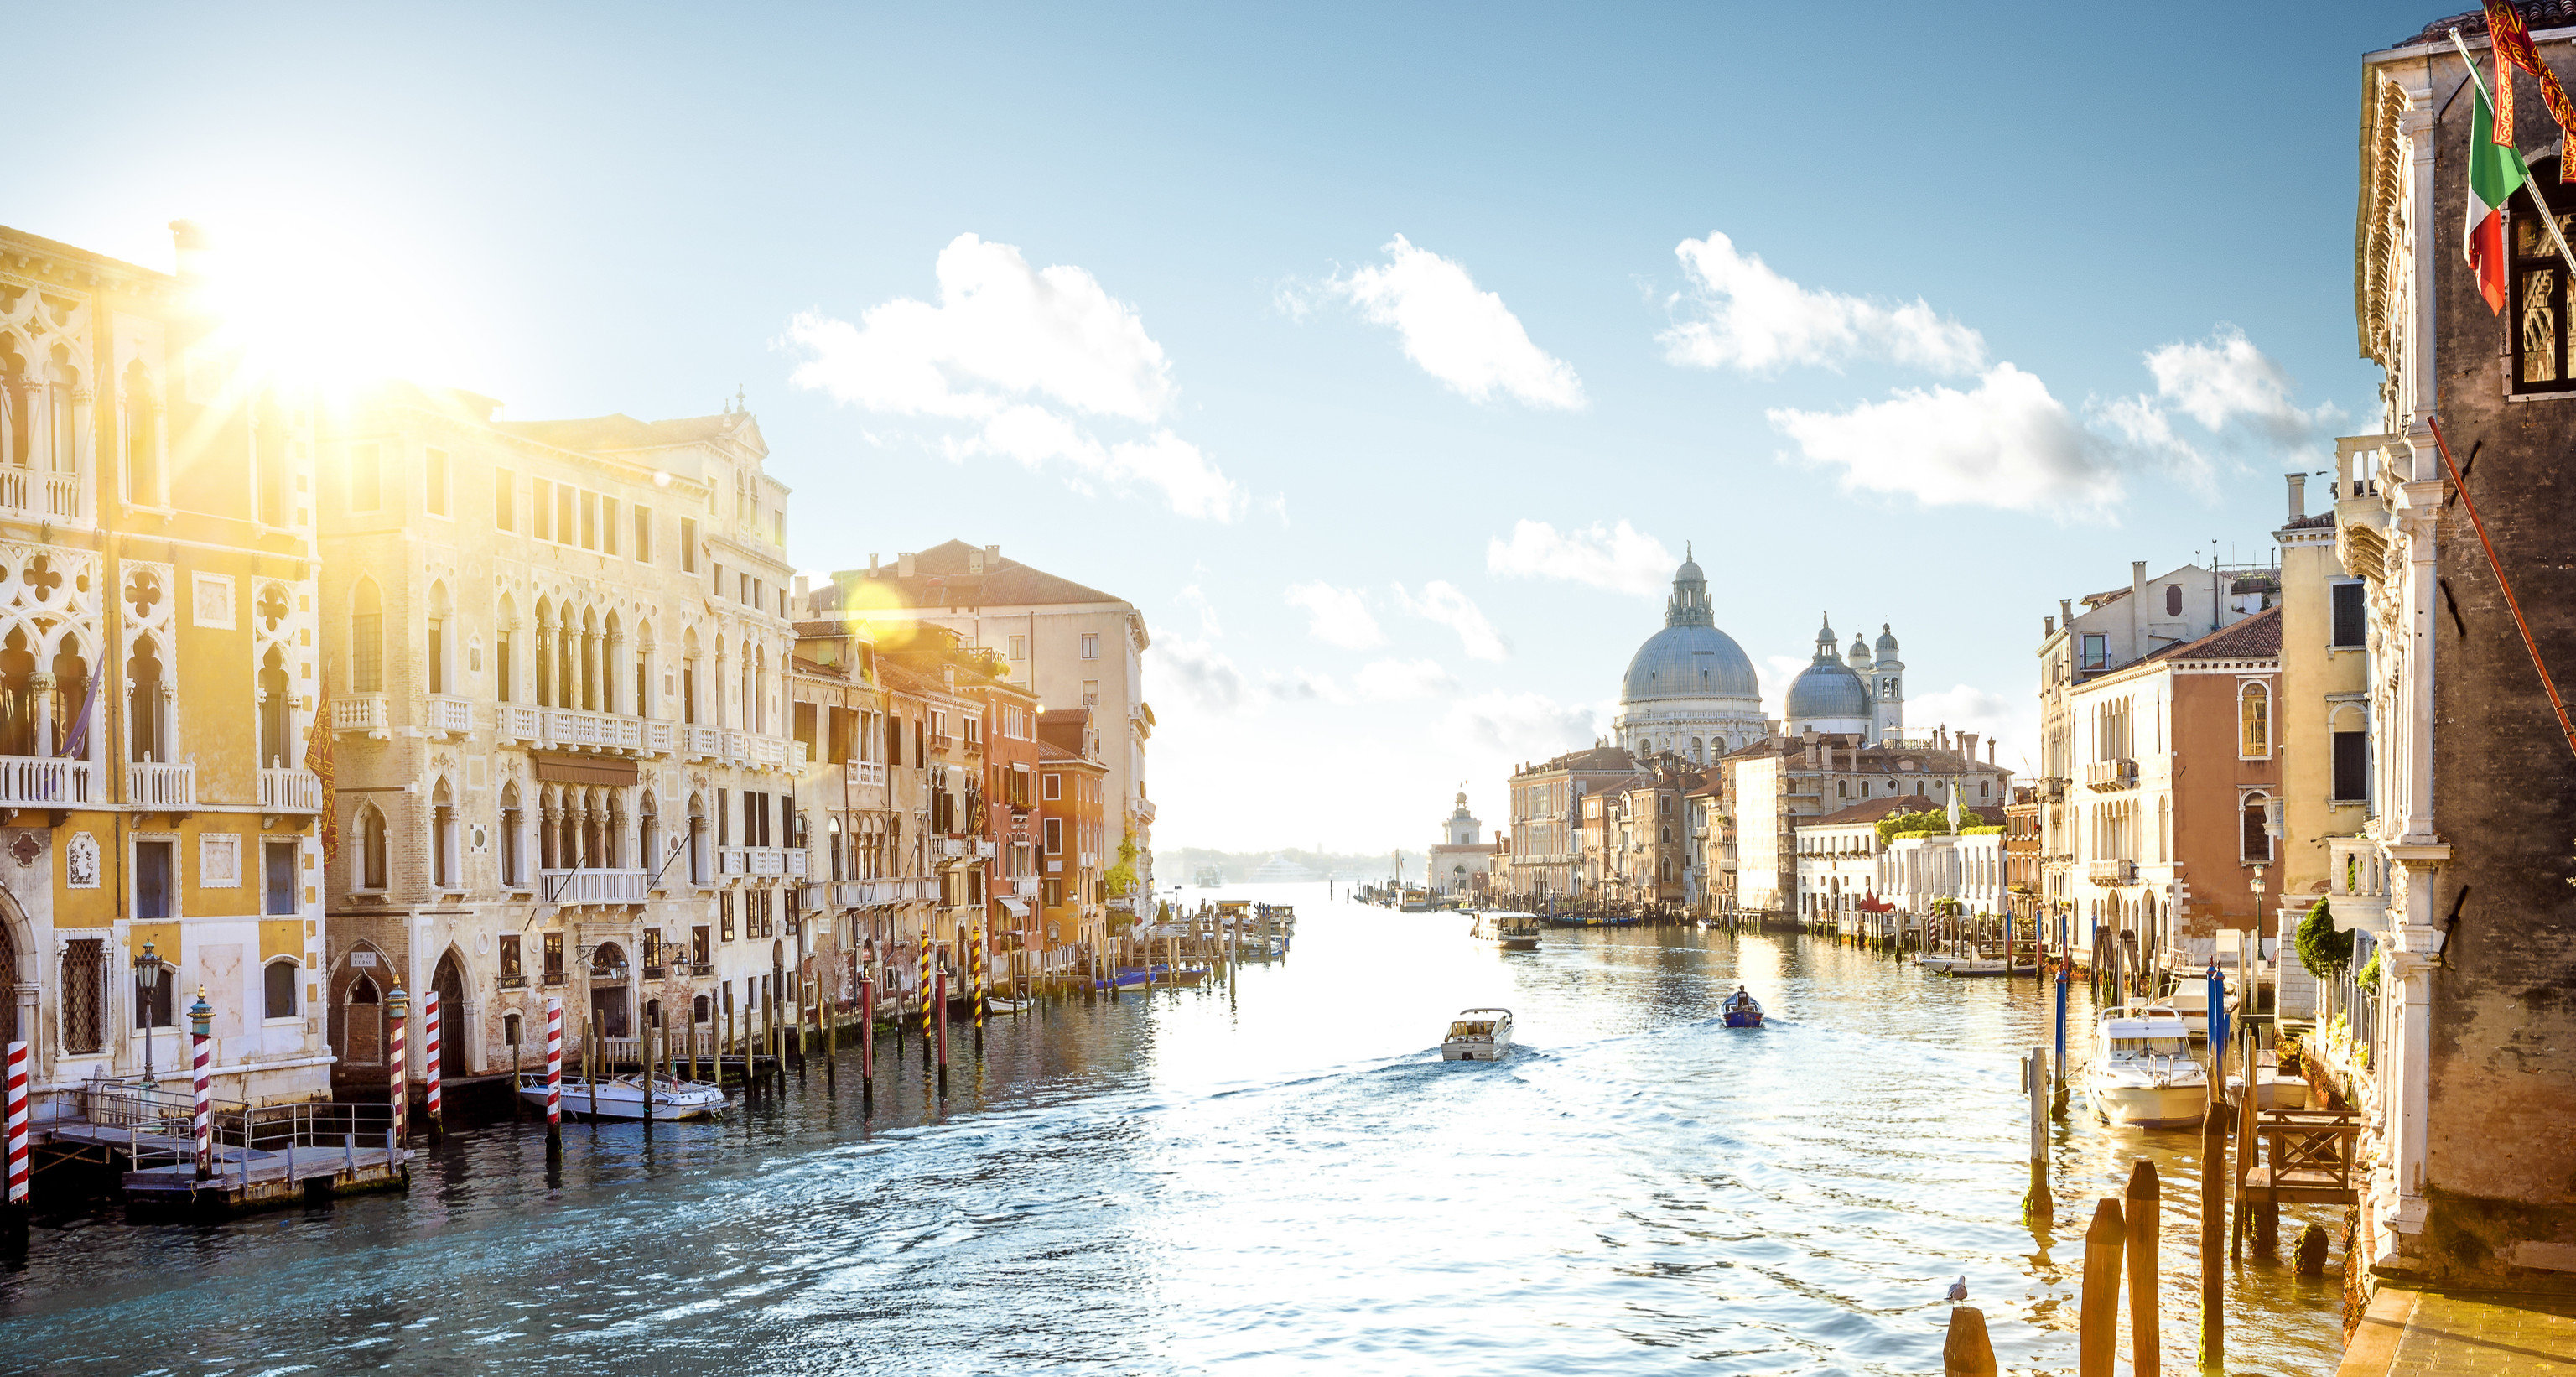 Hotels Trip Ideas building outdoor Town geographical feature Canal cityscape waterway human settlement tourism vehicle